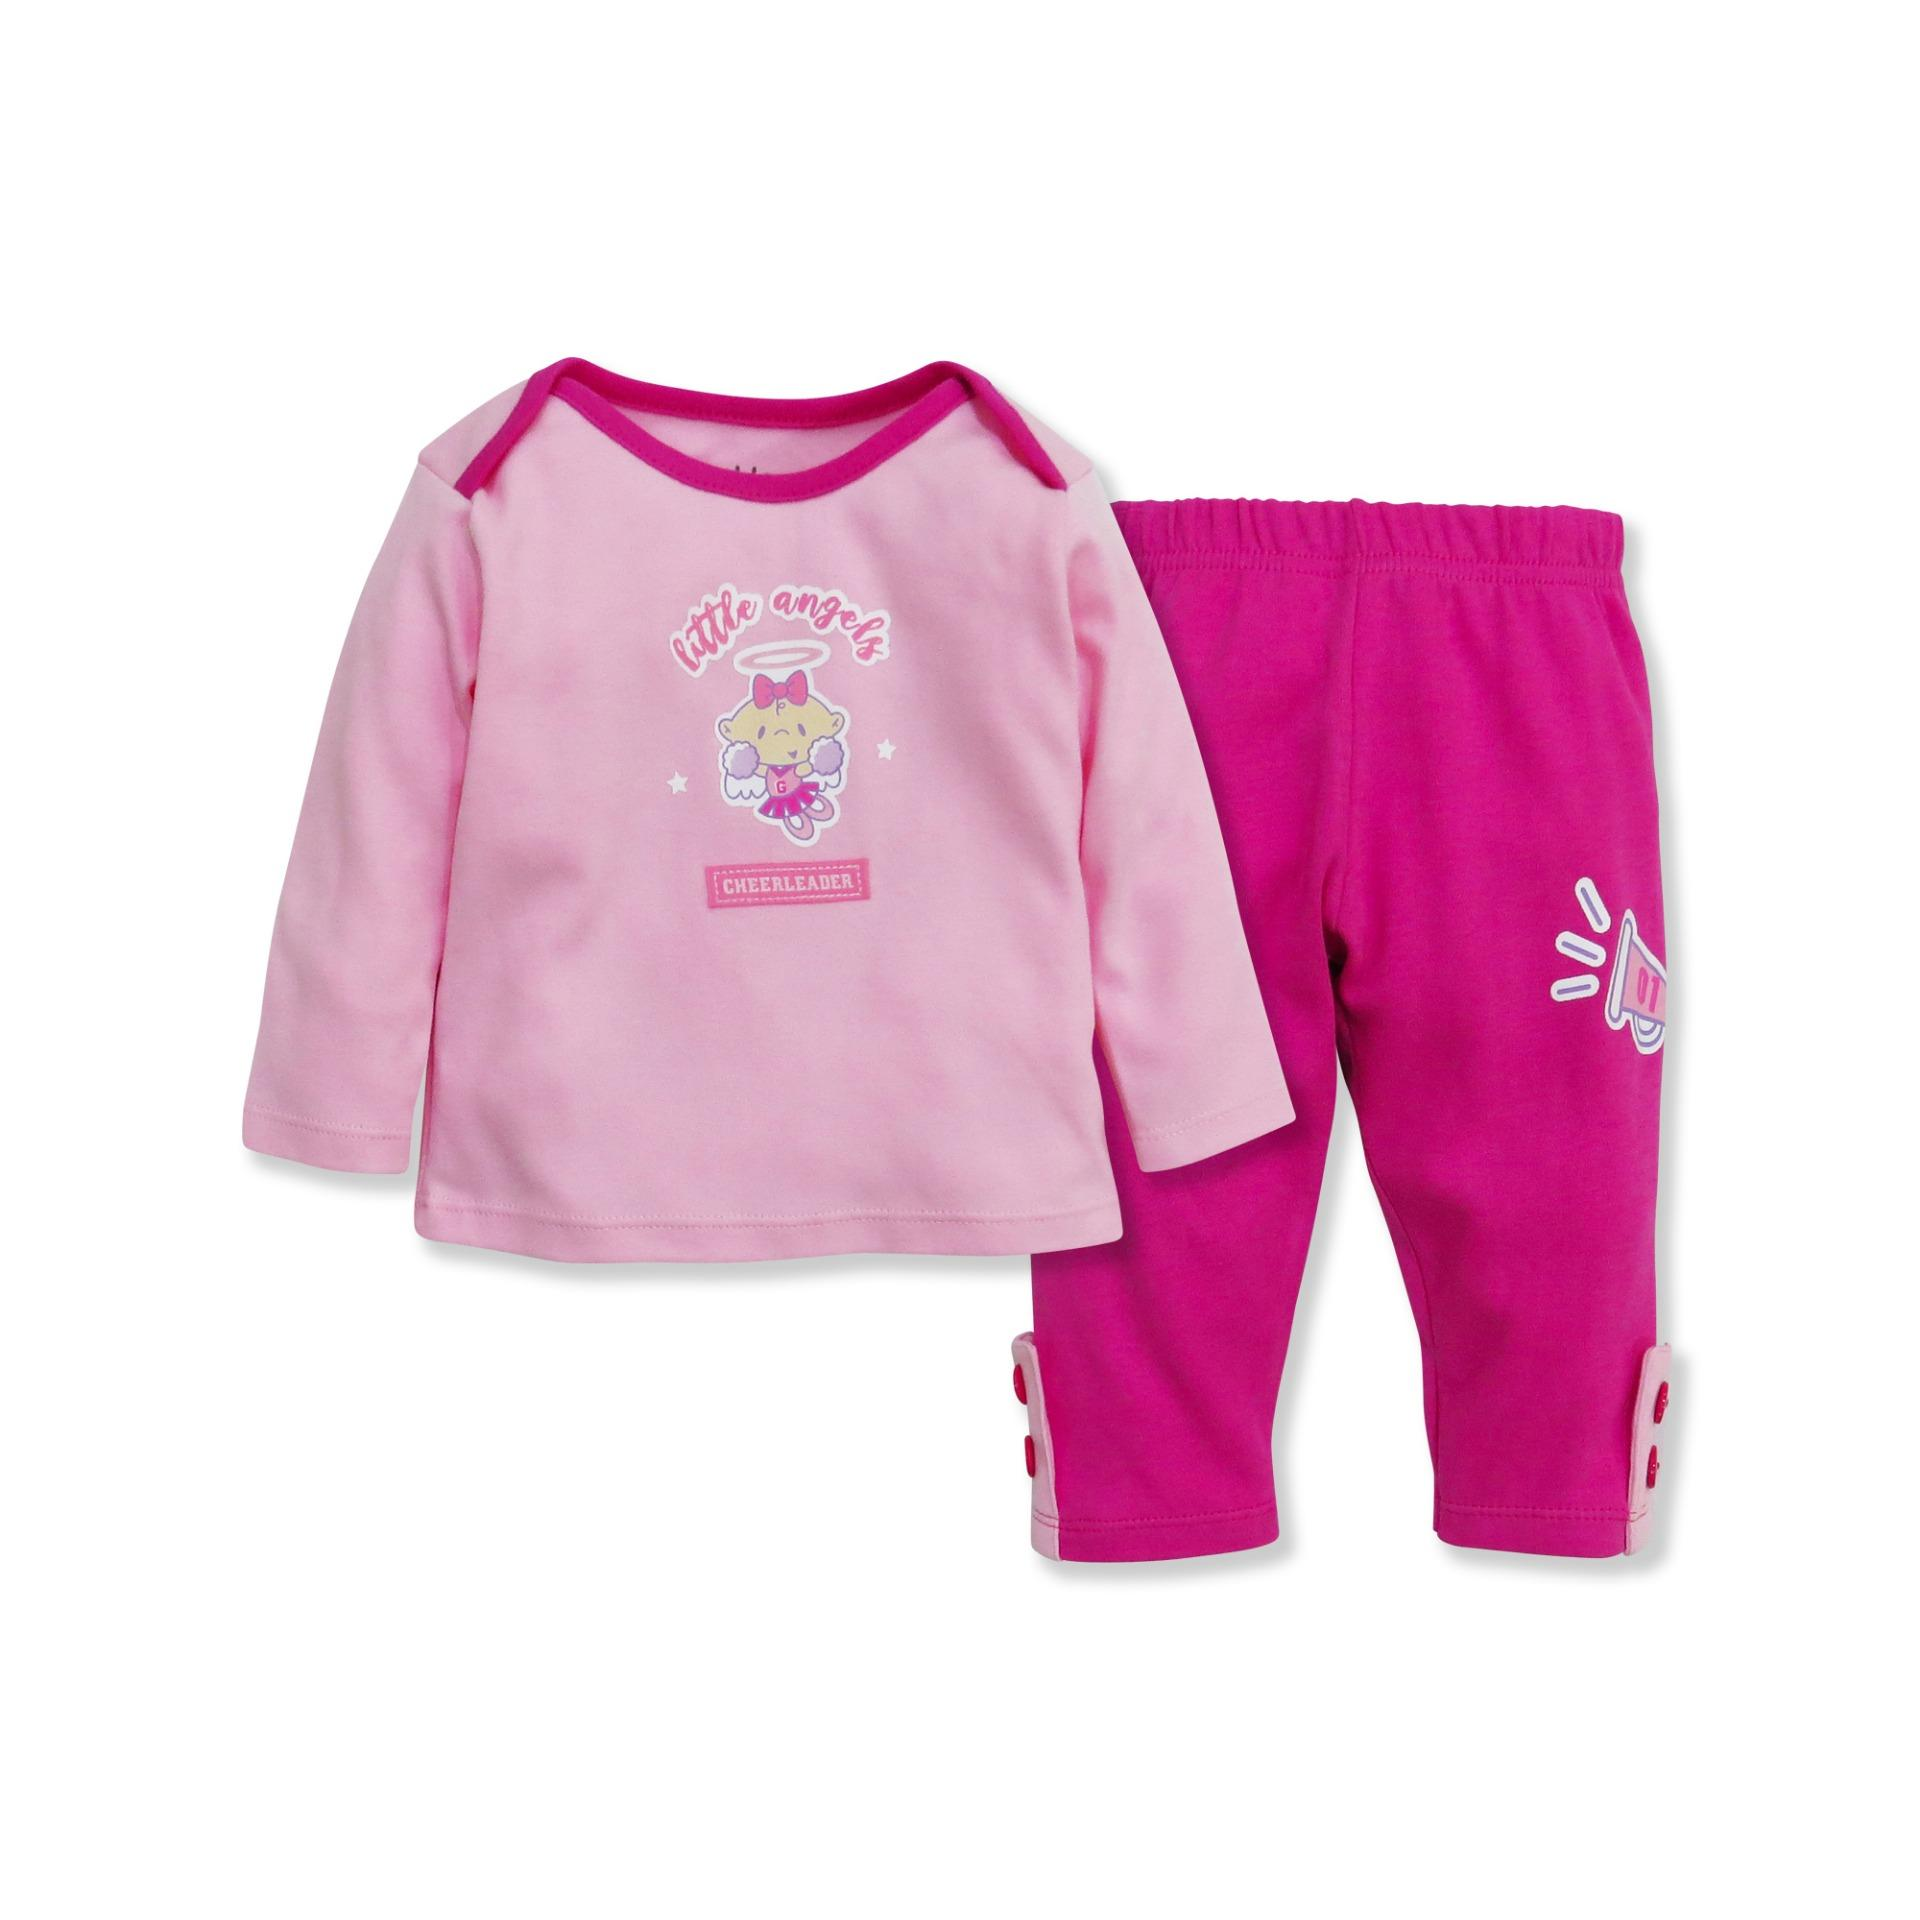 11a350ae7ffd Girls Clothing Sets for sale - Clothing Sets for Baby Girls online ...